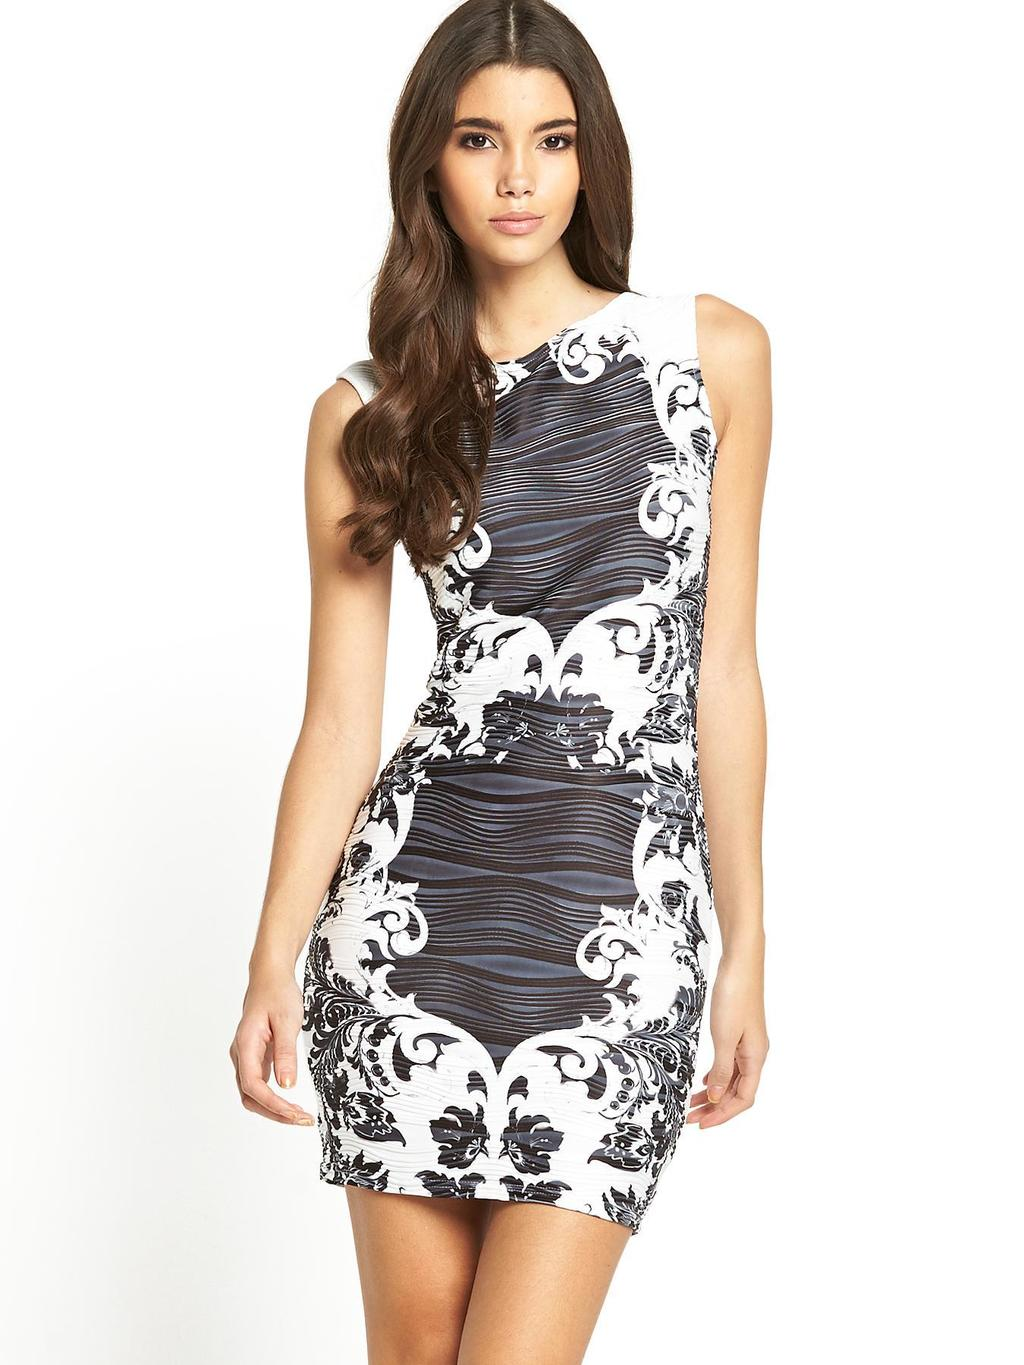 Printed Bodycon Dress, Black - length: mid thigh; fit: tight; sleeve style: sleeveless; style: bodycon; secondary colour: white; predominant colour: charcoal; occasions: evening; fibres: polyester/polyamide - stretch; neckline: crew; sleeve length: sleeveless; texture group: jersey - clingy; pattern type: fabric; pattern size: standard; pattern: patterned/print; season: s/s 2014; trends: monochrome